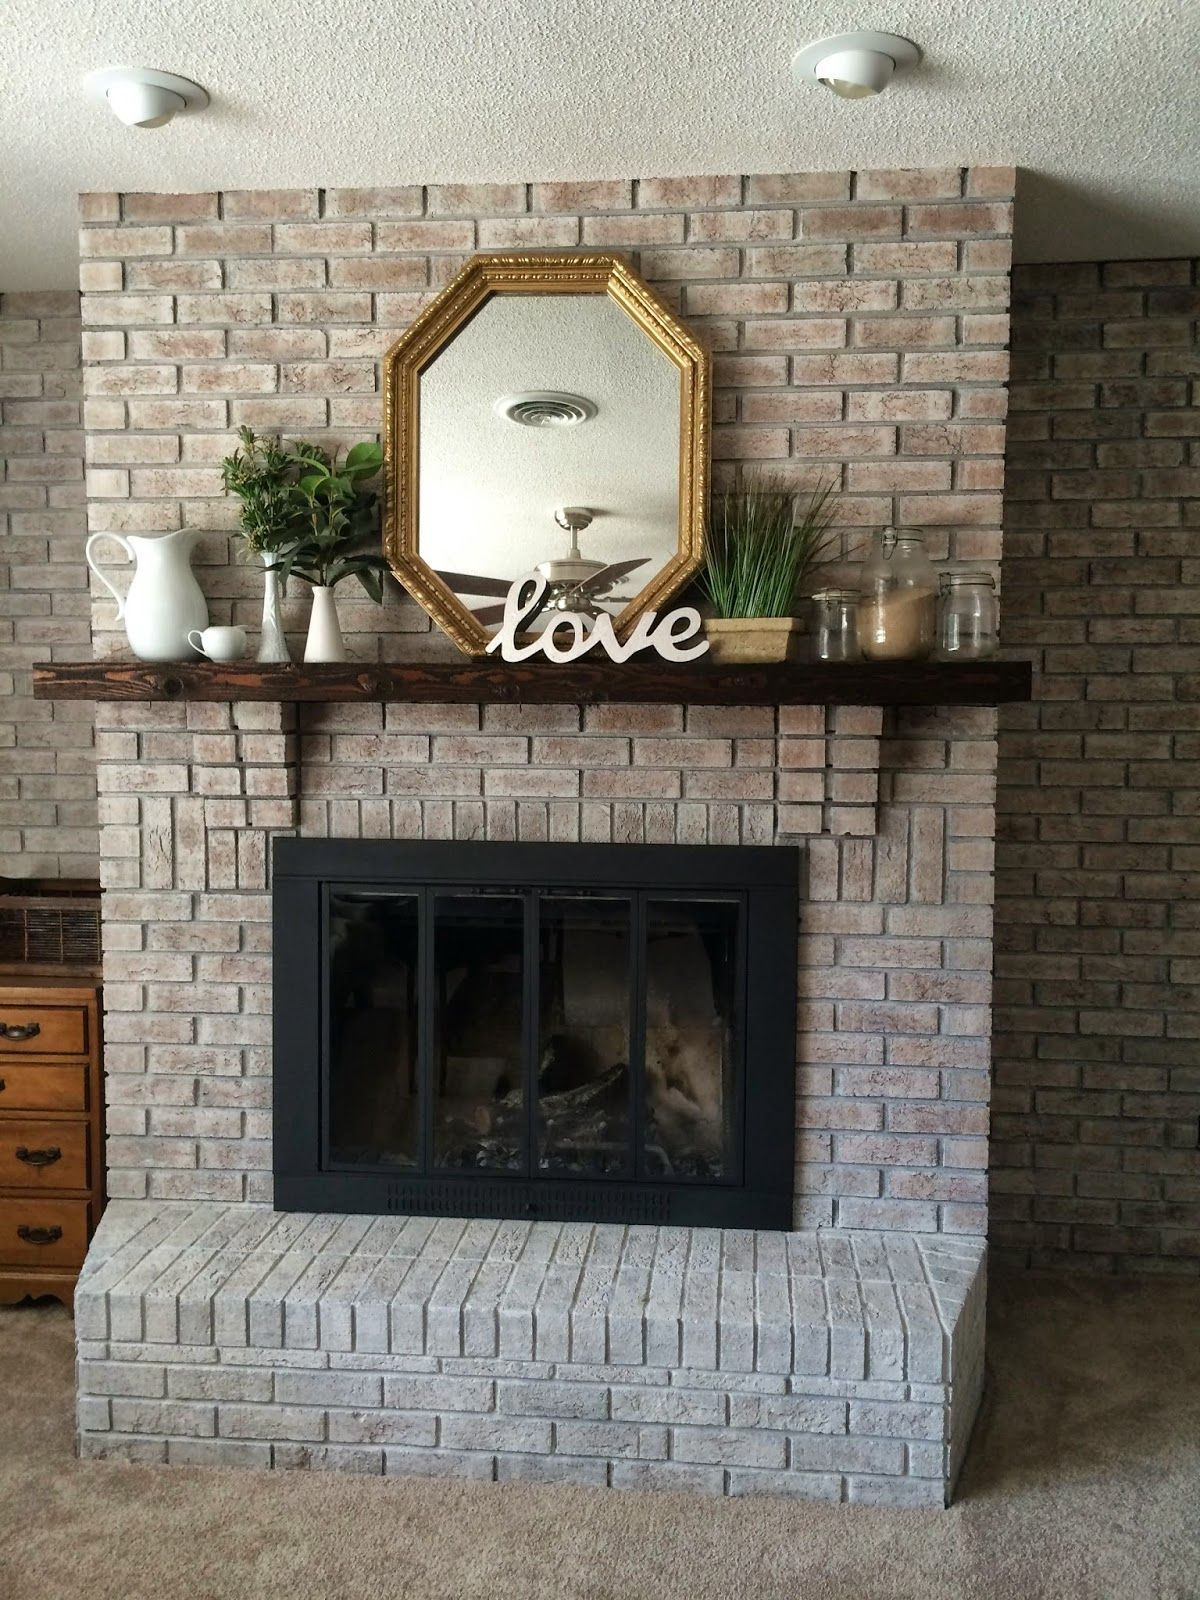 com fireplace diy five clean how friday thediybungalow brick the firebox bungalow paint cleaned front newly cleaning a ready to